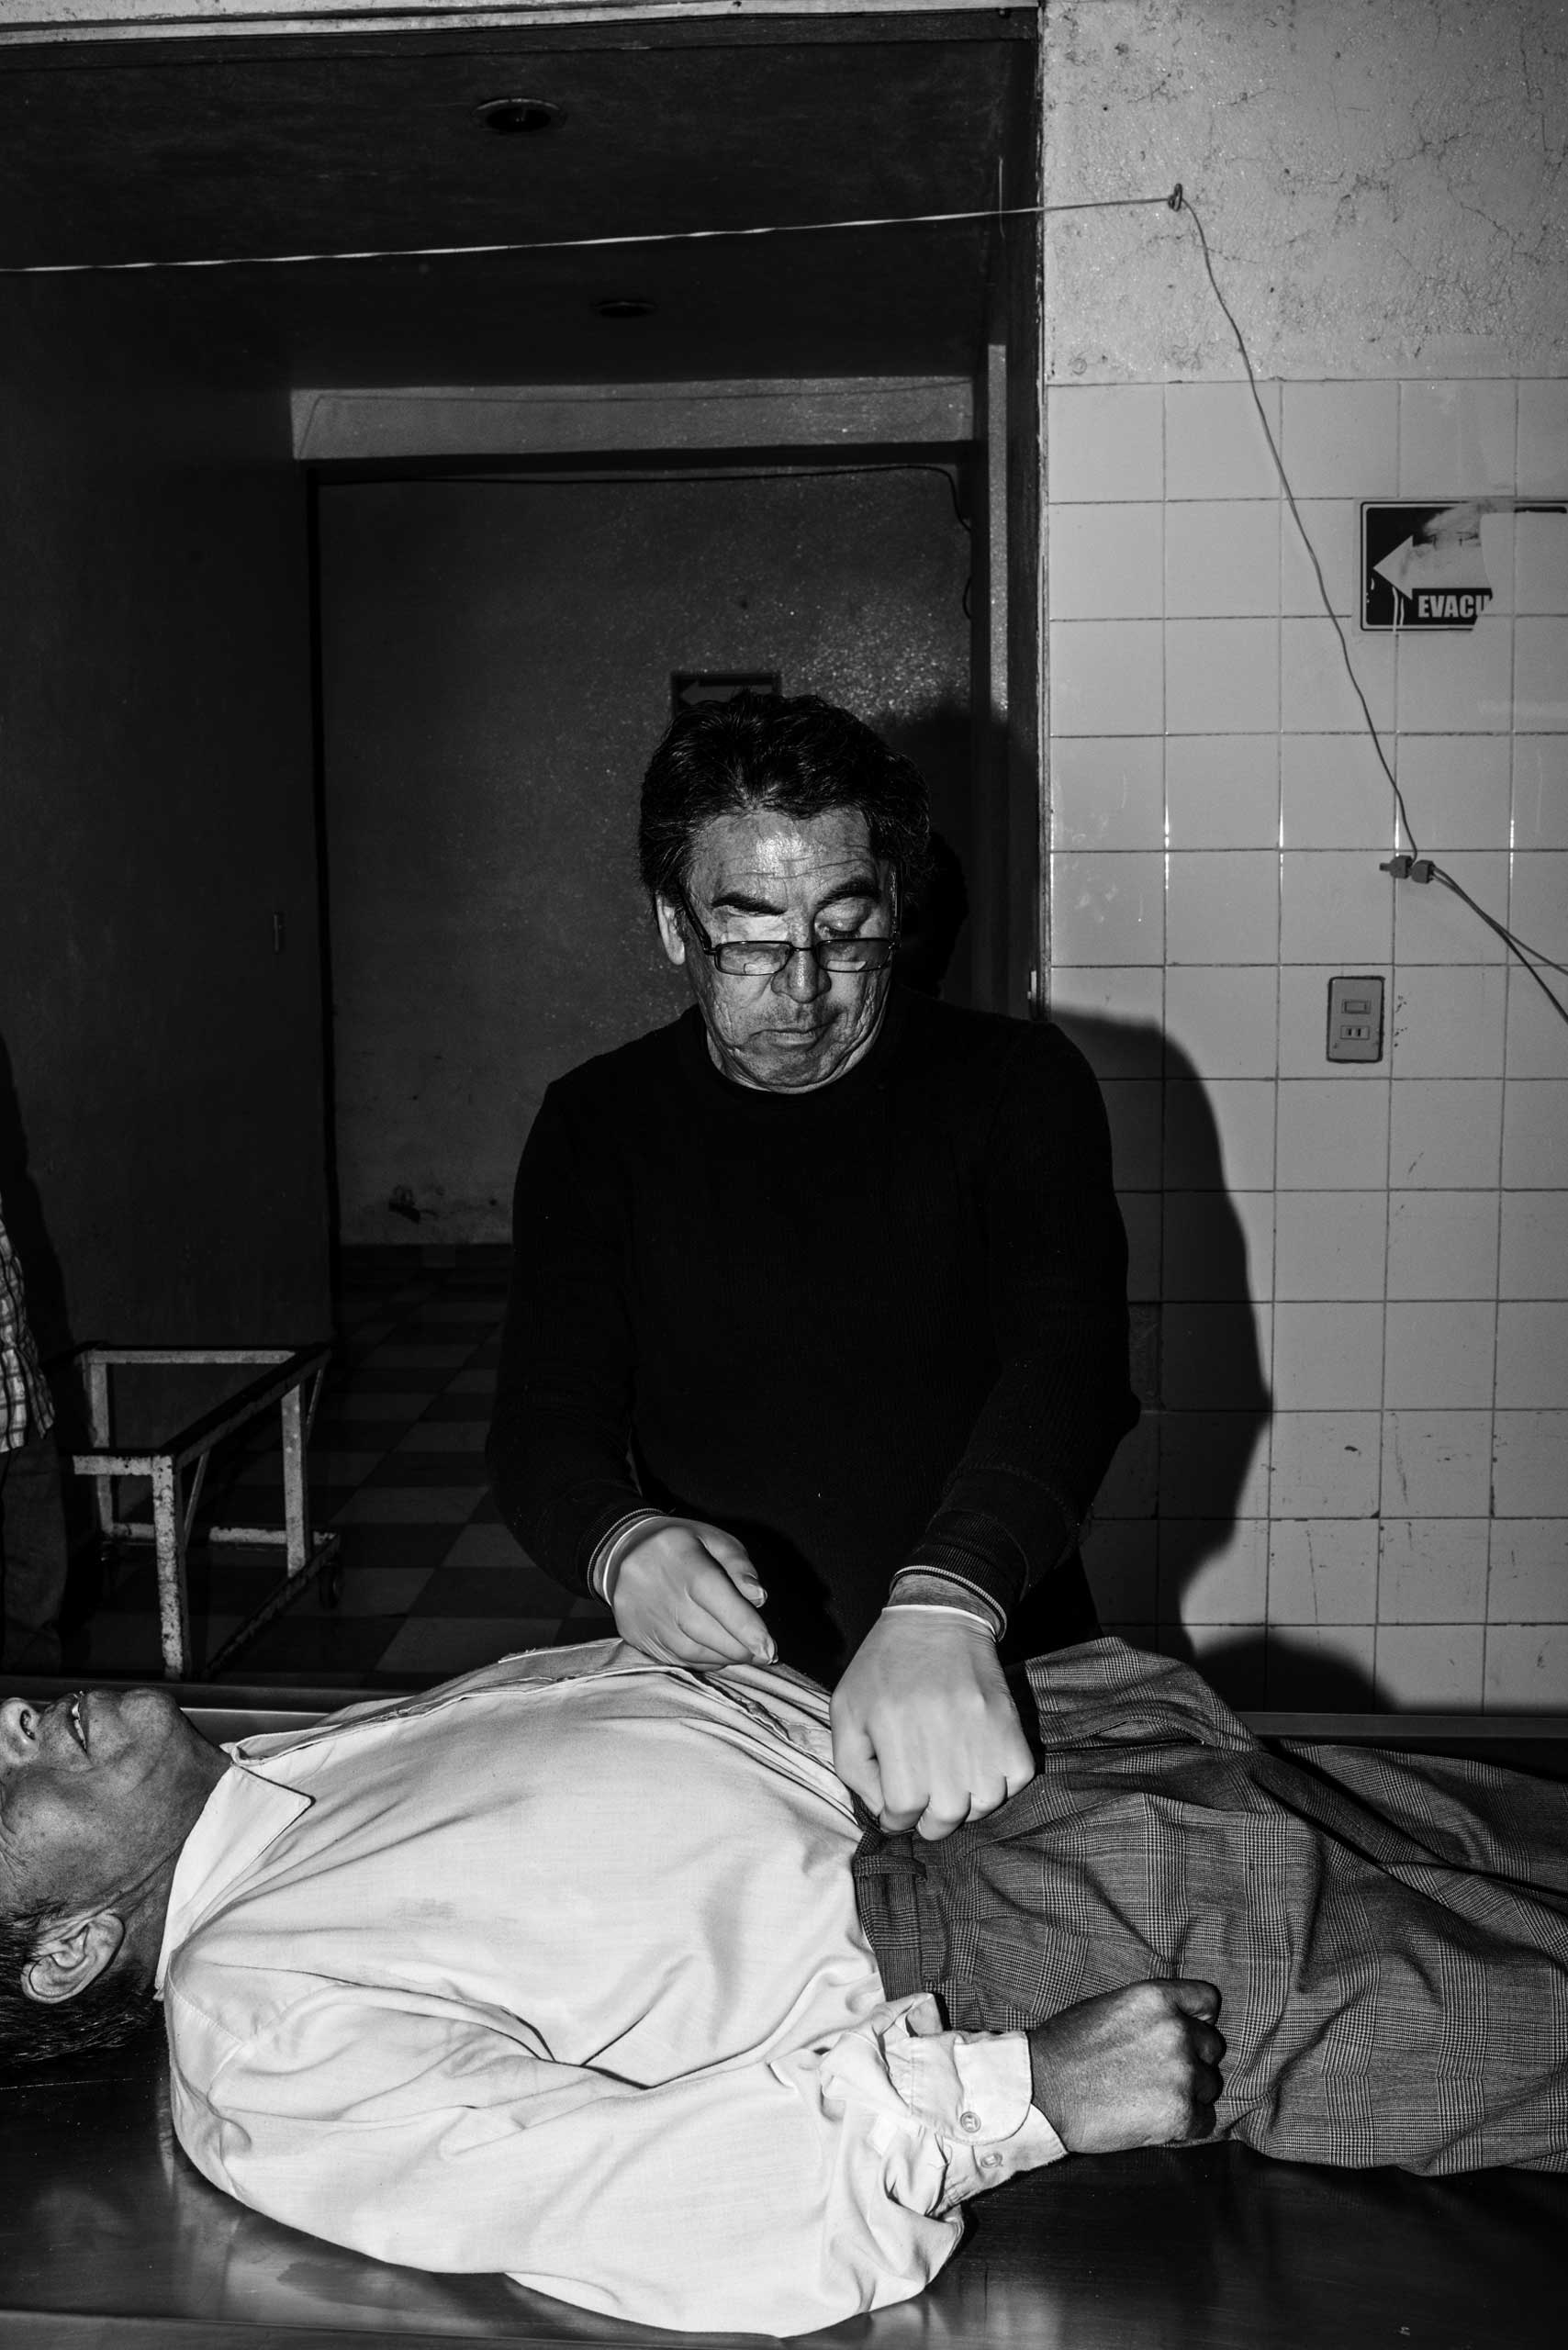 Arthuro, an employee of the Embalsamadores Funeral Office dresses up a body before putting it in a coffin. March 9, 2016.